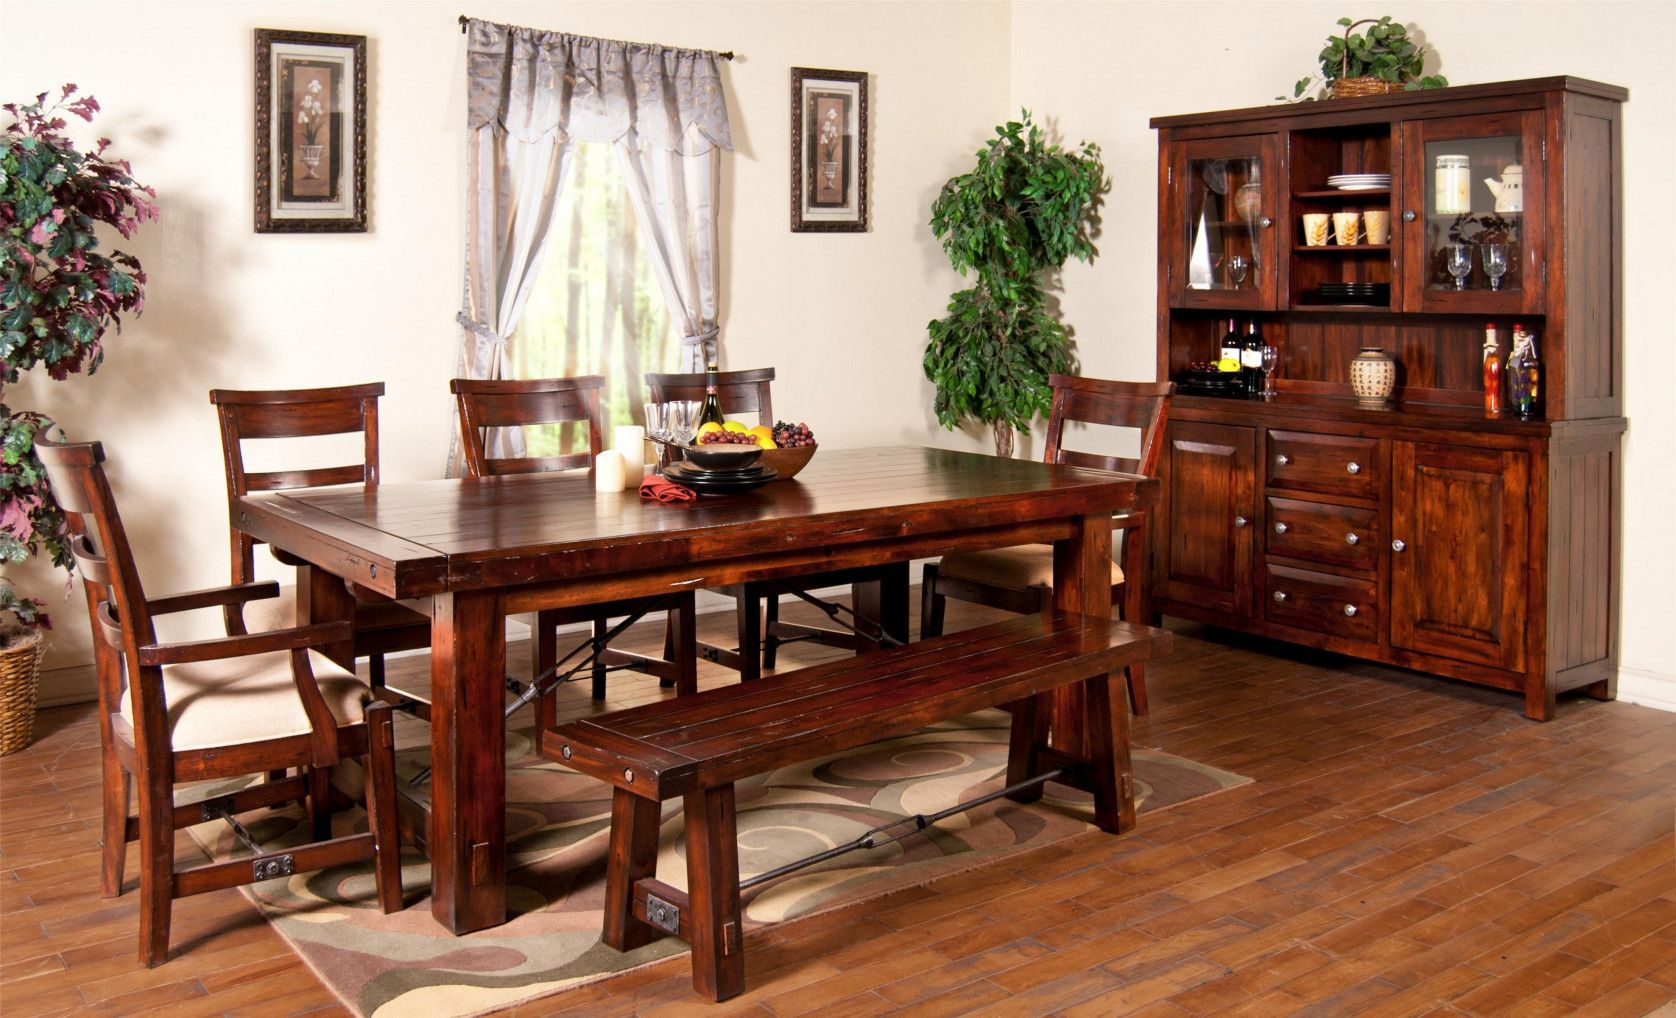 50 Dining Room Table And China Cabinet